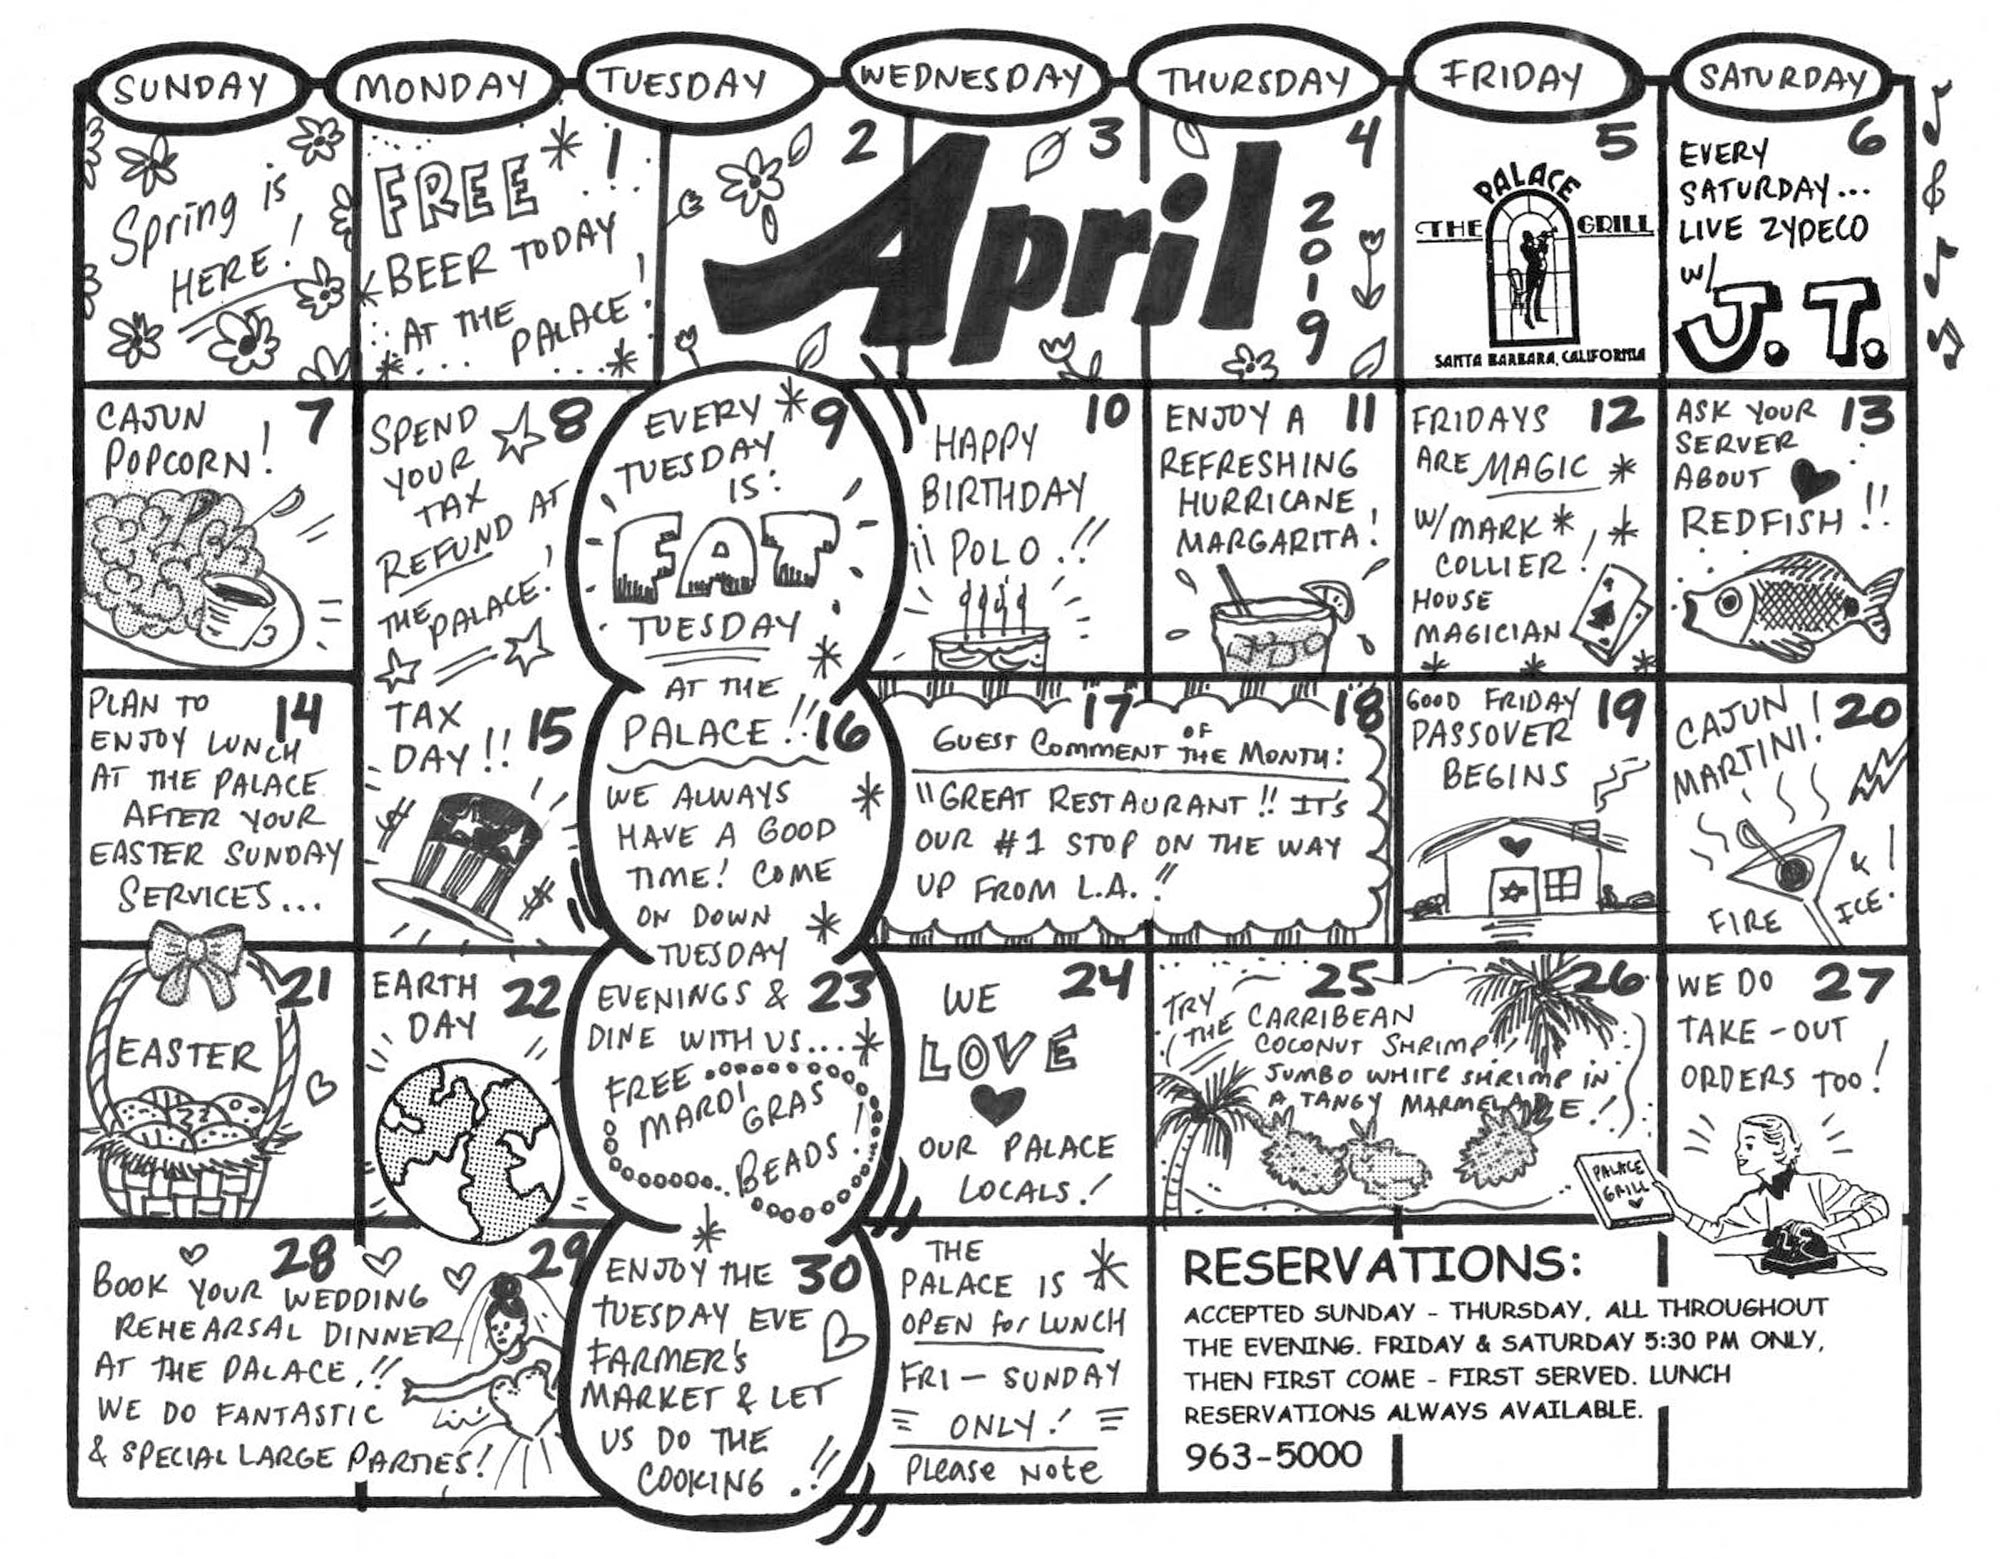 April 2019 Event Calendar Palace Grill